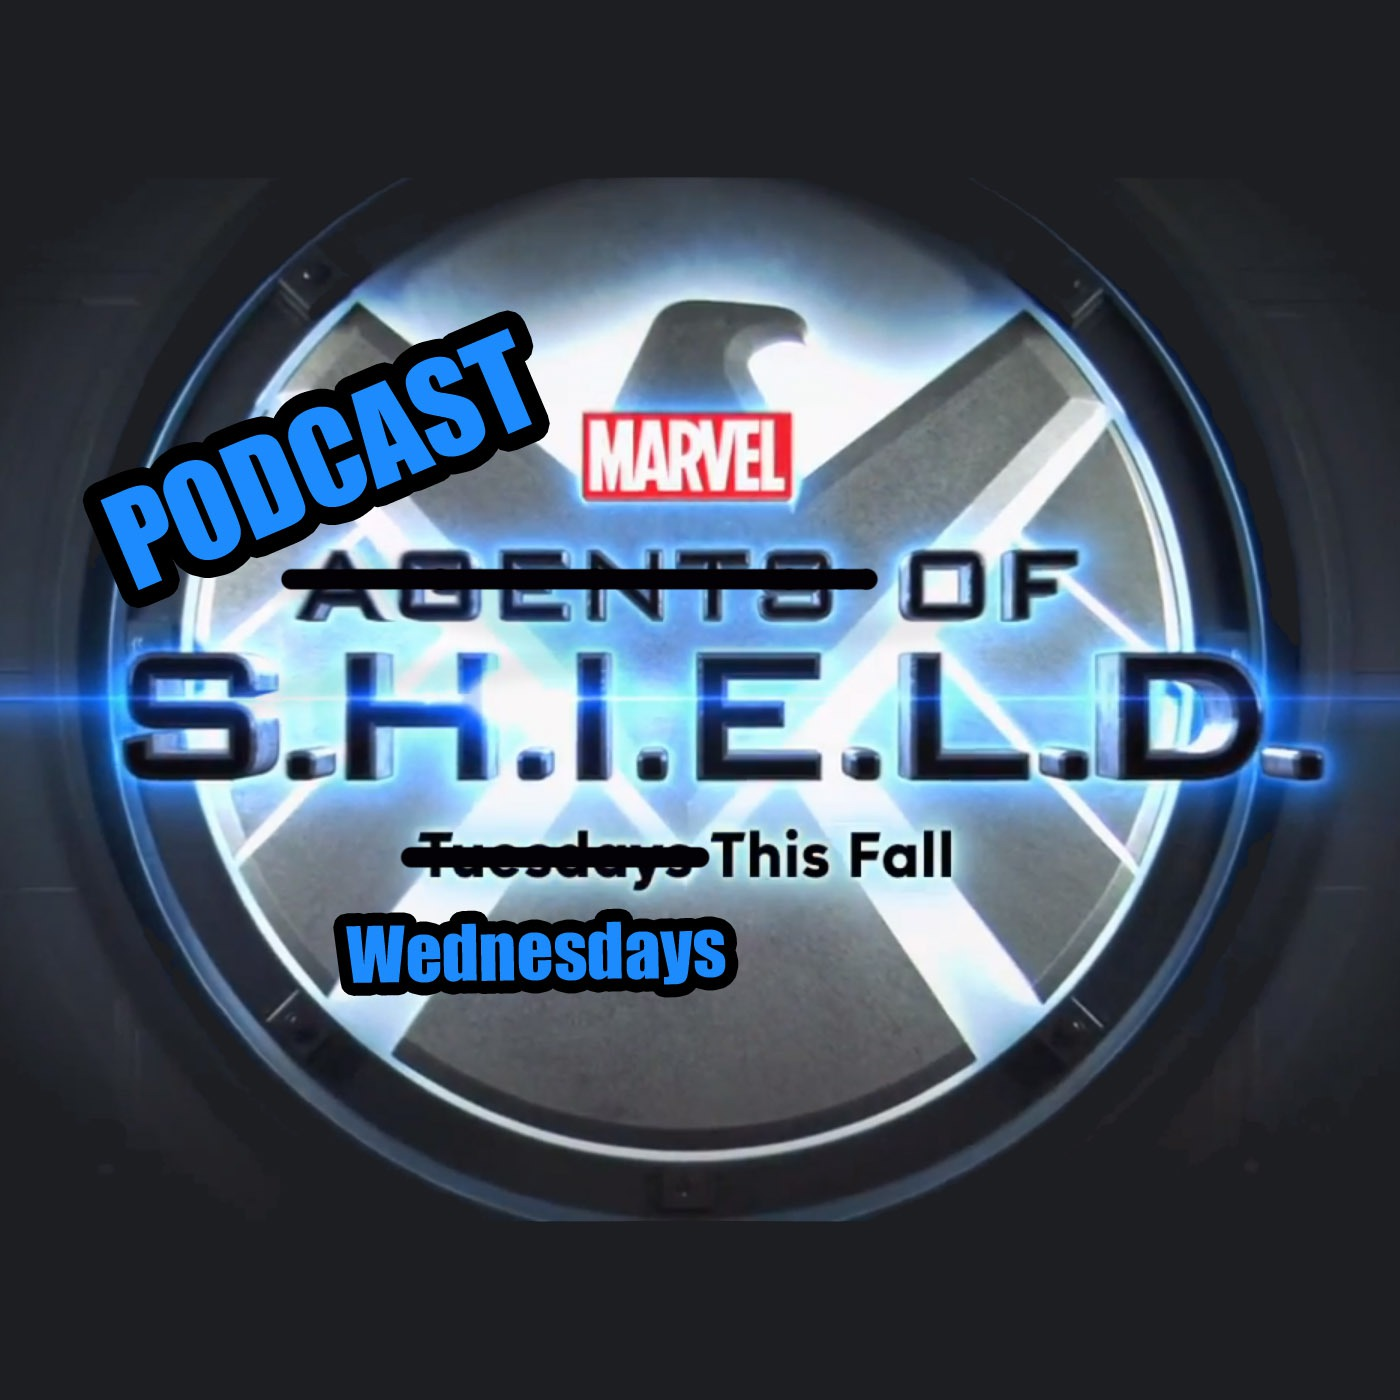 Podcast of SHIELD